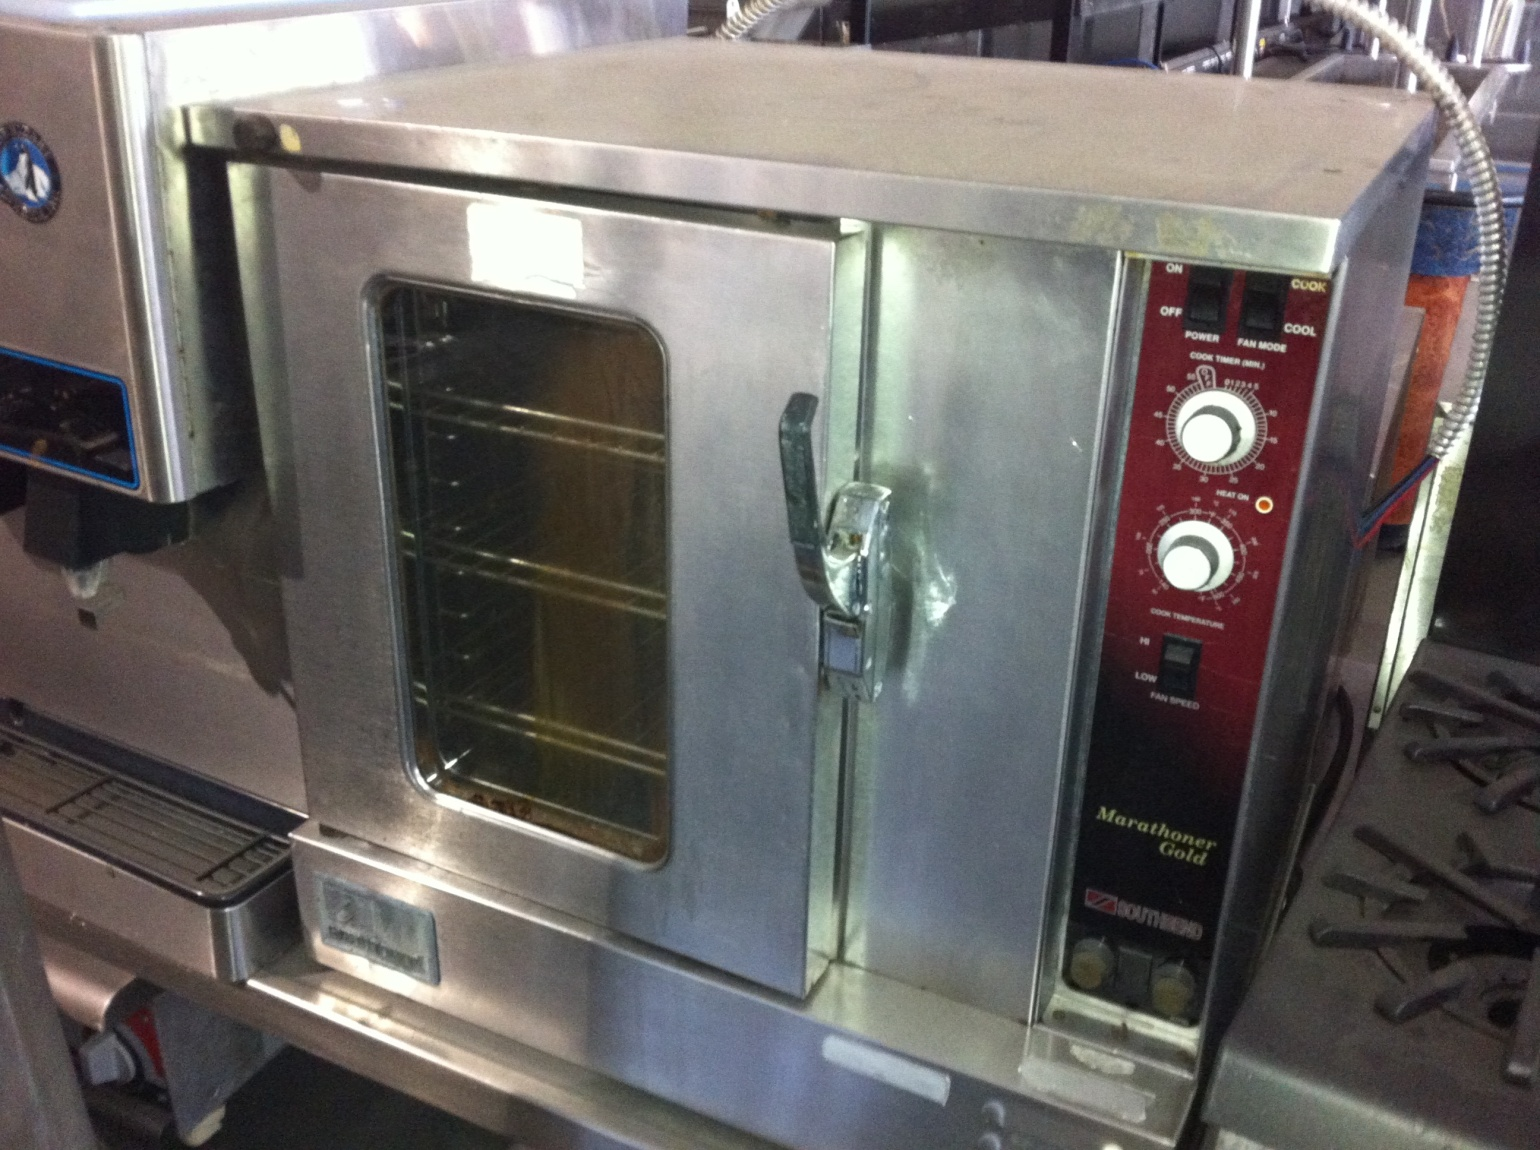 Southbend Marathoner Gold Convection Oven